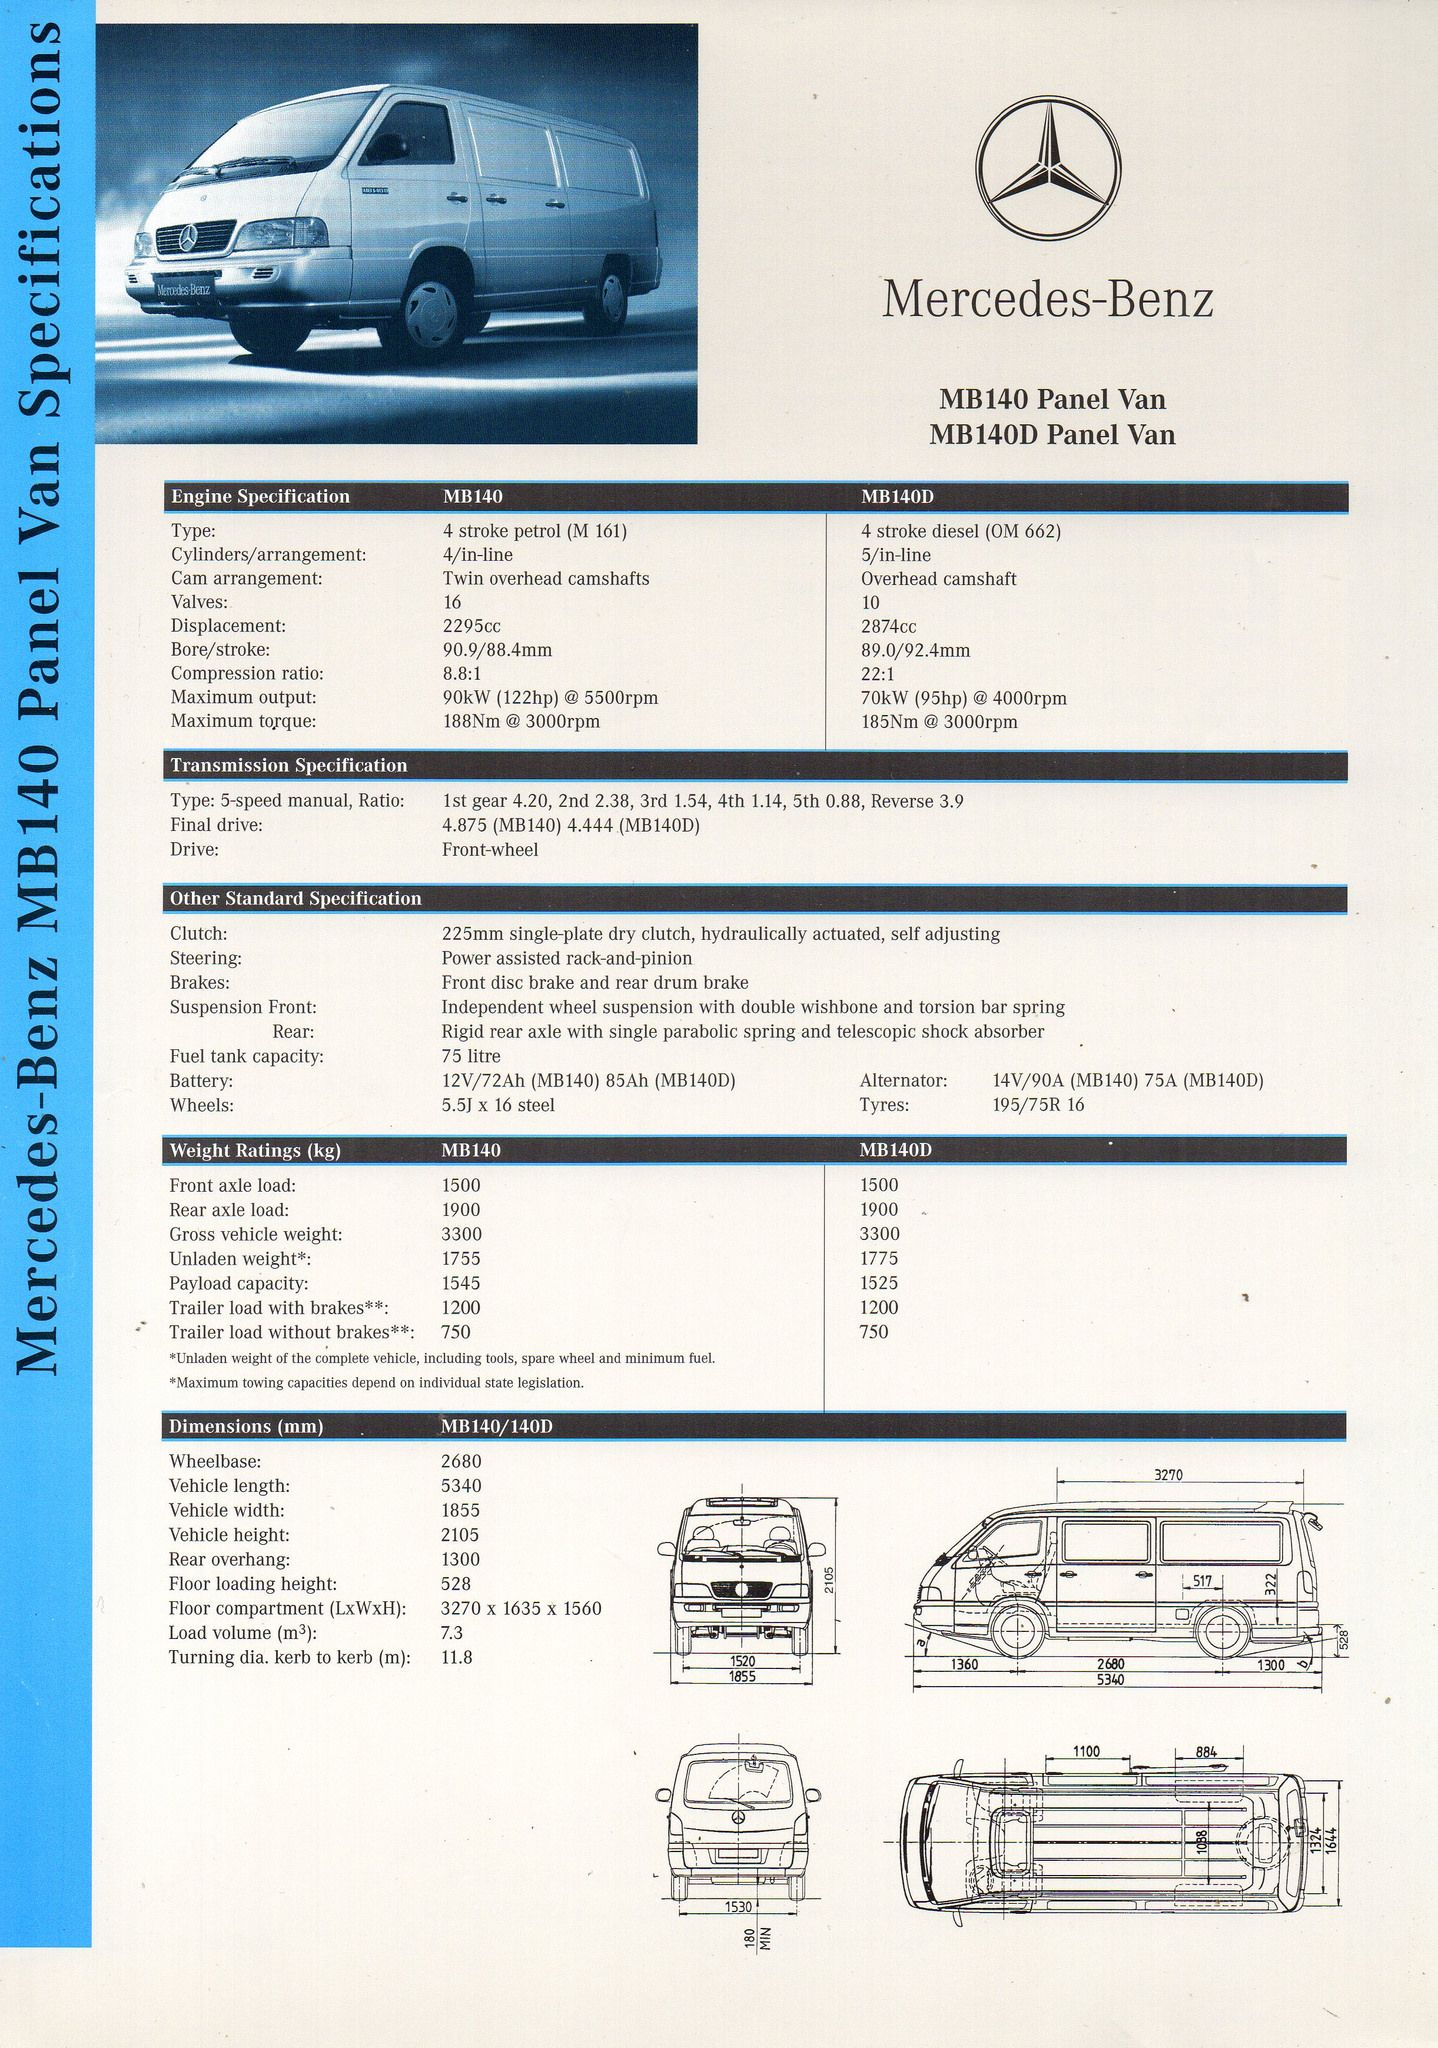 2000 Mercedes Benz Mb140 Mb140d Panel Van Specifications Double Sided Sheet Side 1 Aussie Brochure Mercedes Benz Amg Mercedes Benz Van